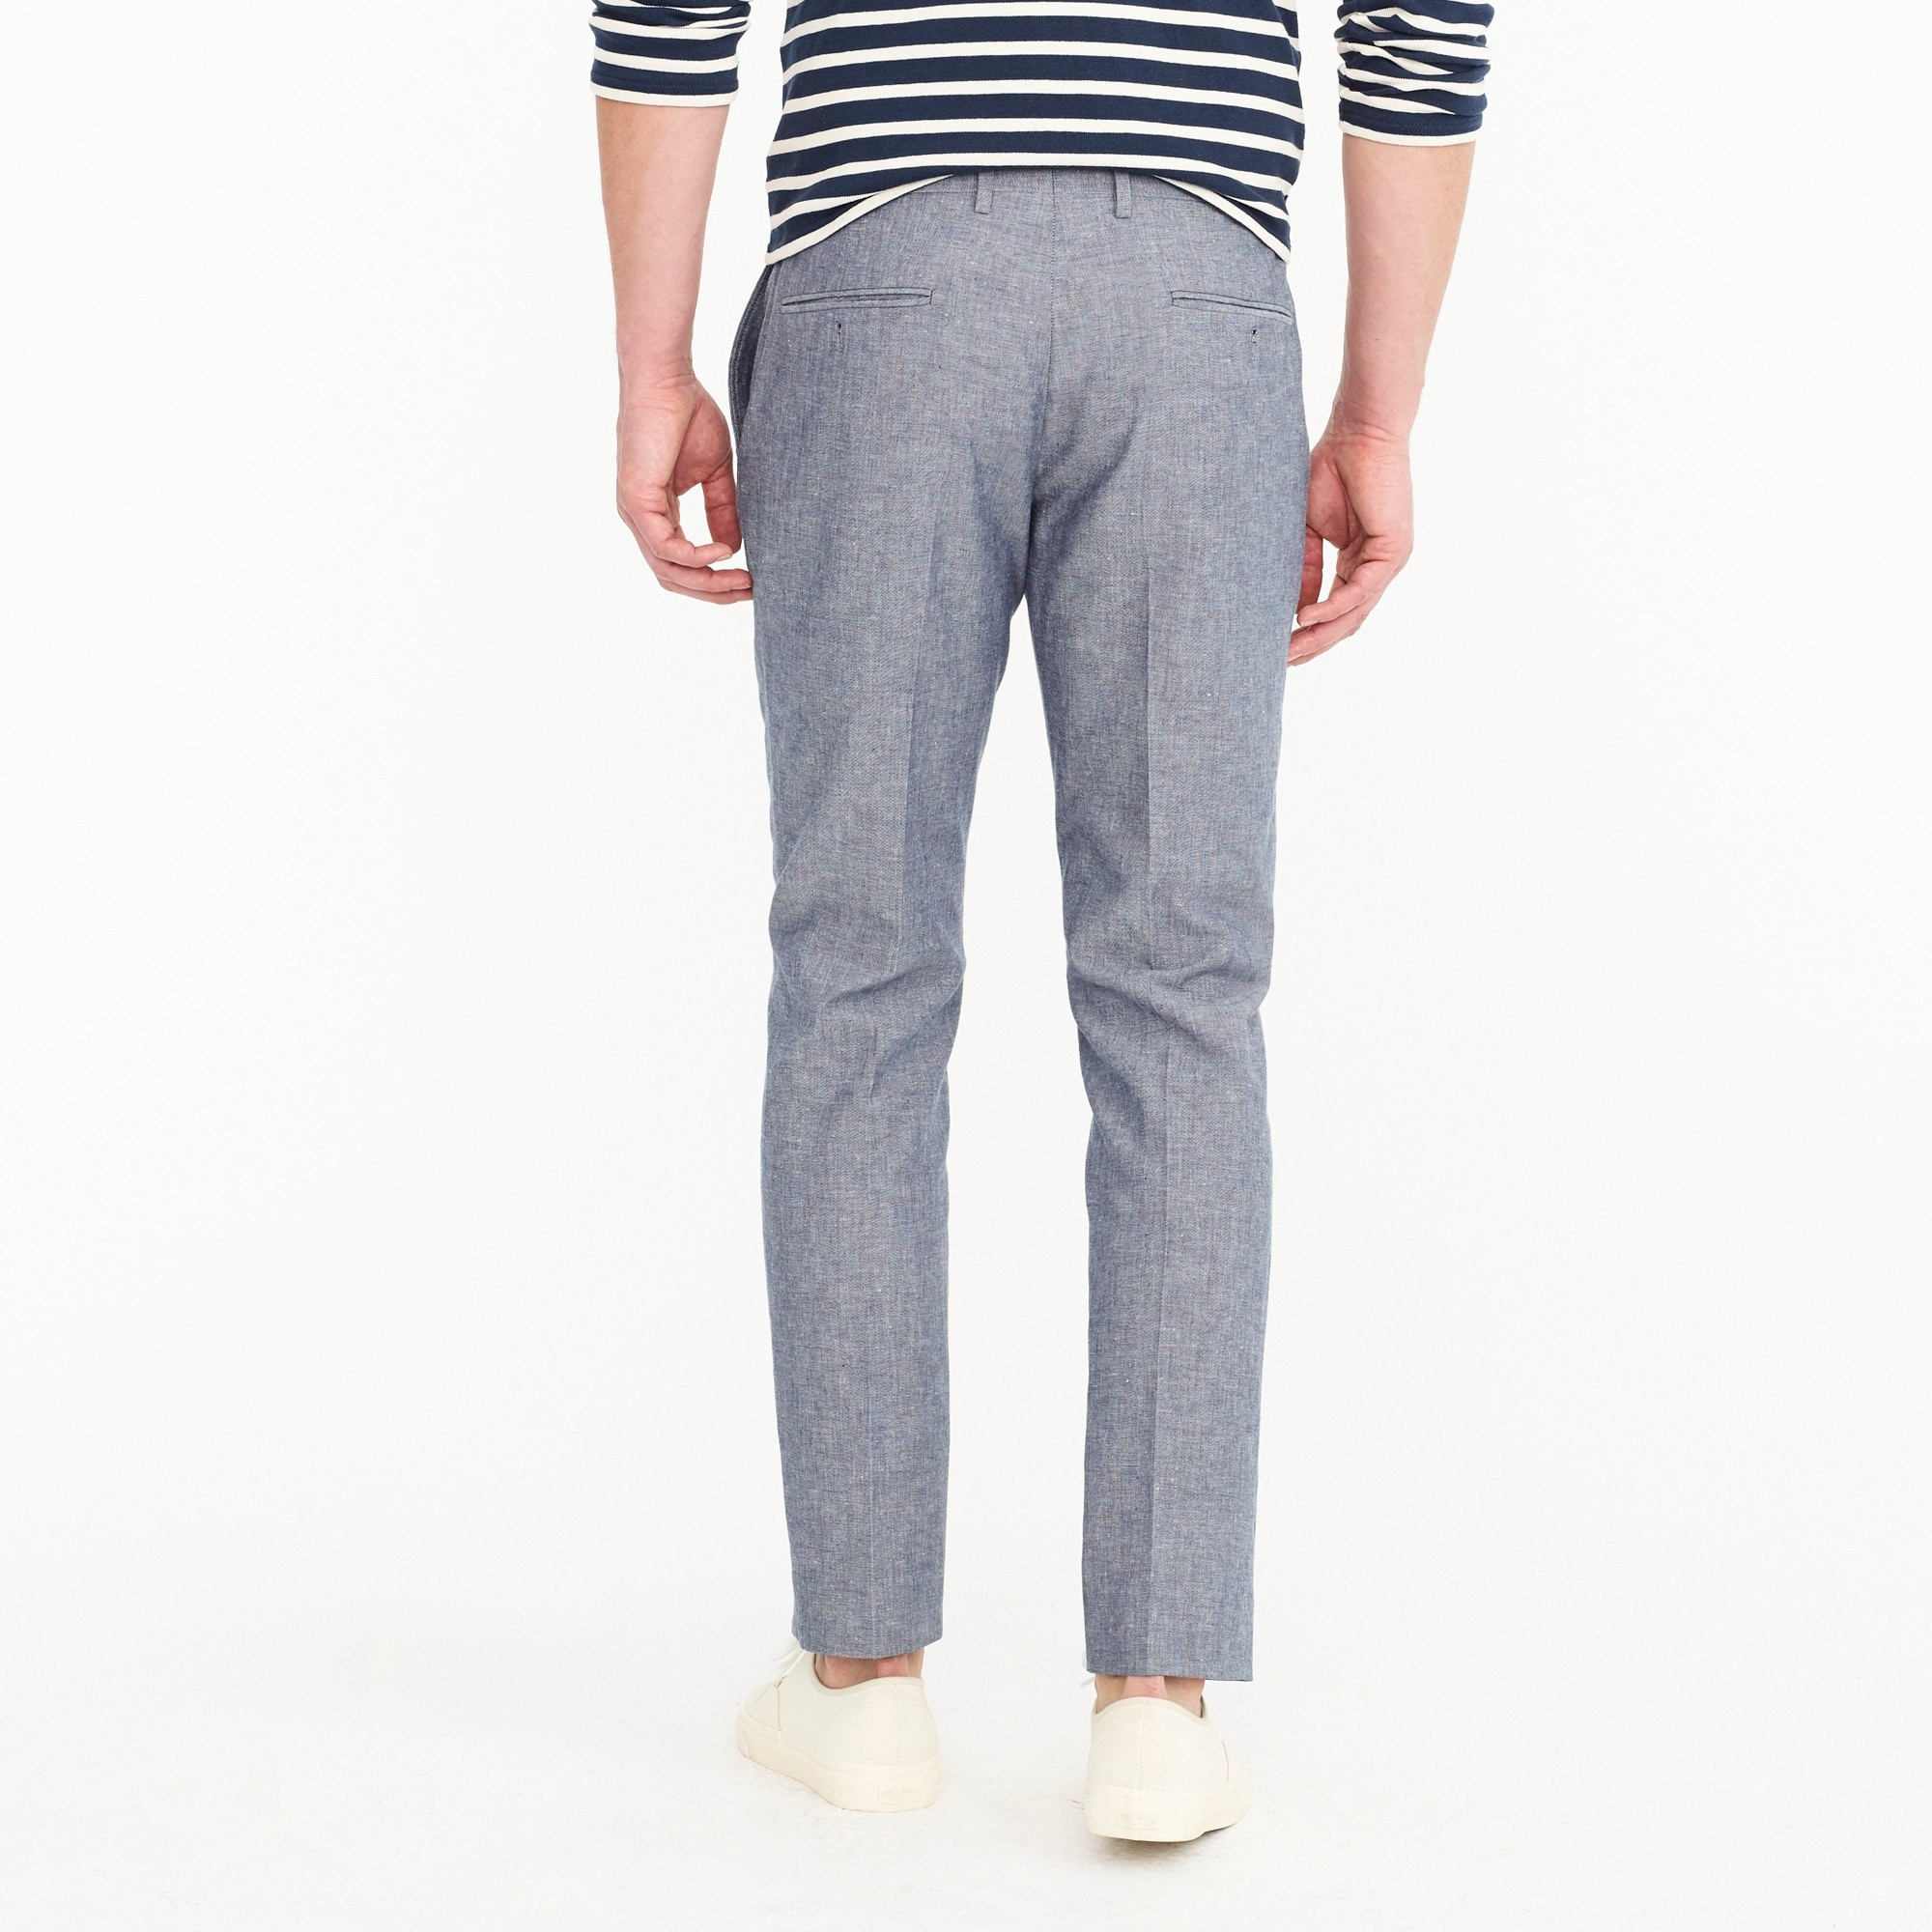 Image 3 for Ludlow Slim-fit unstructured suit pant in cotton-linen